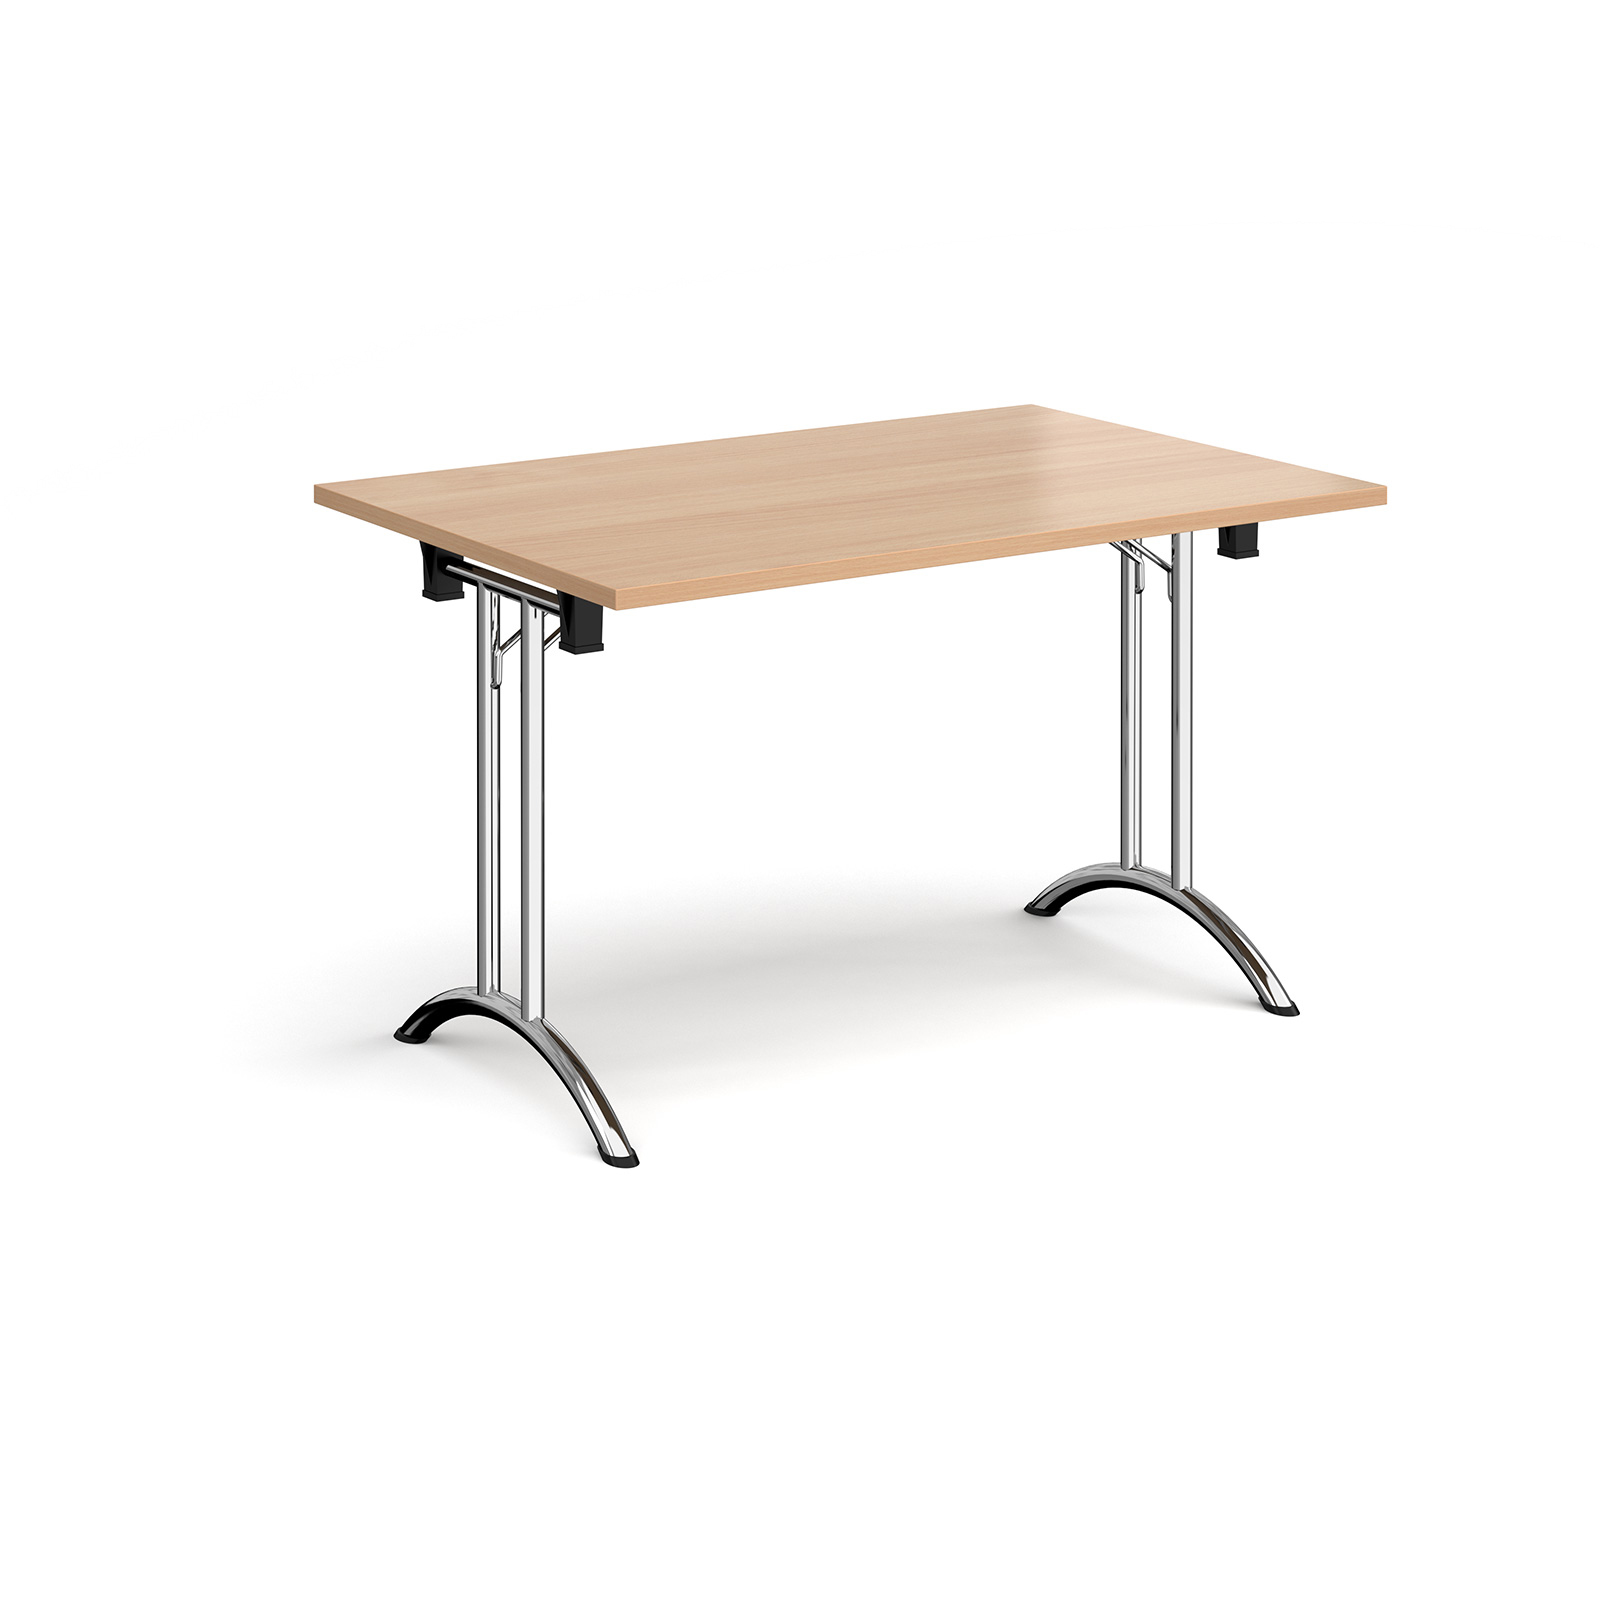 Boardroom / Meeting Rectangular folding leg table with curved feet